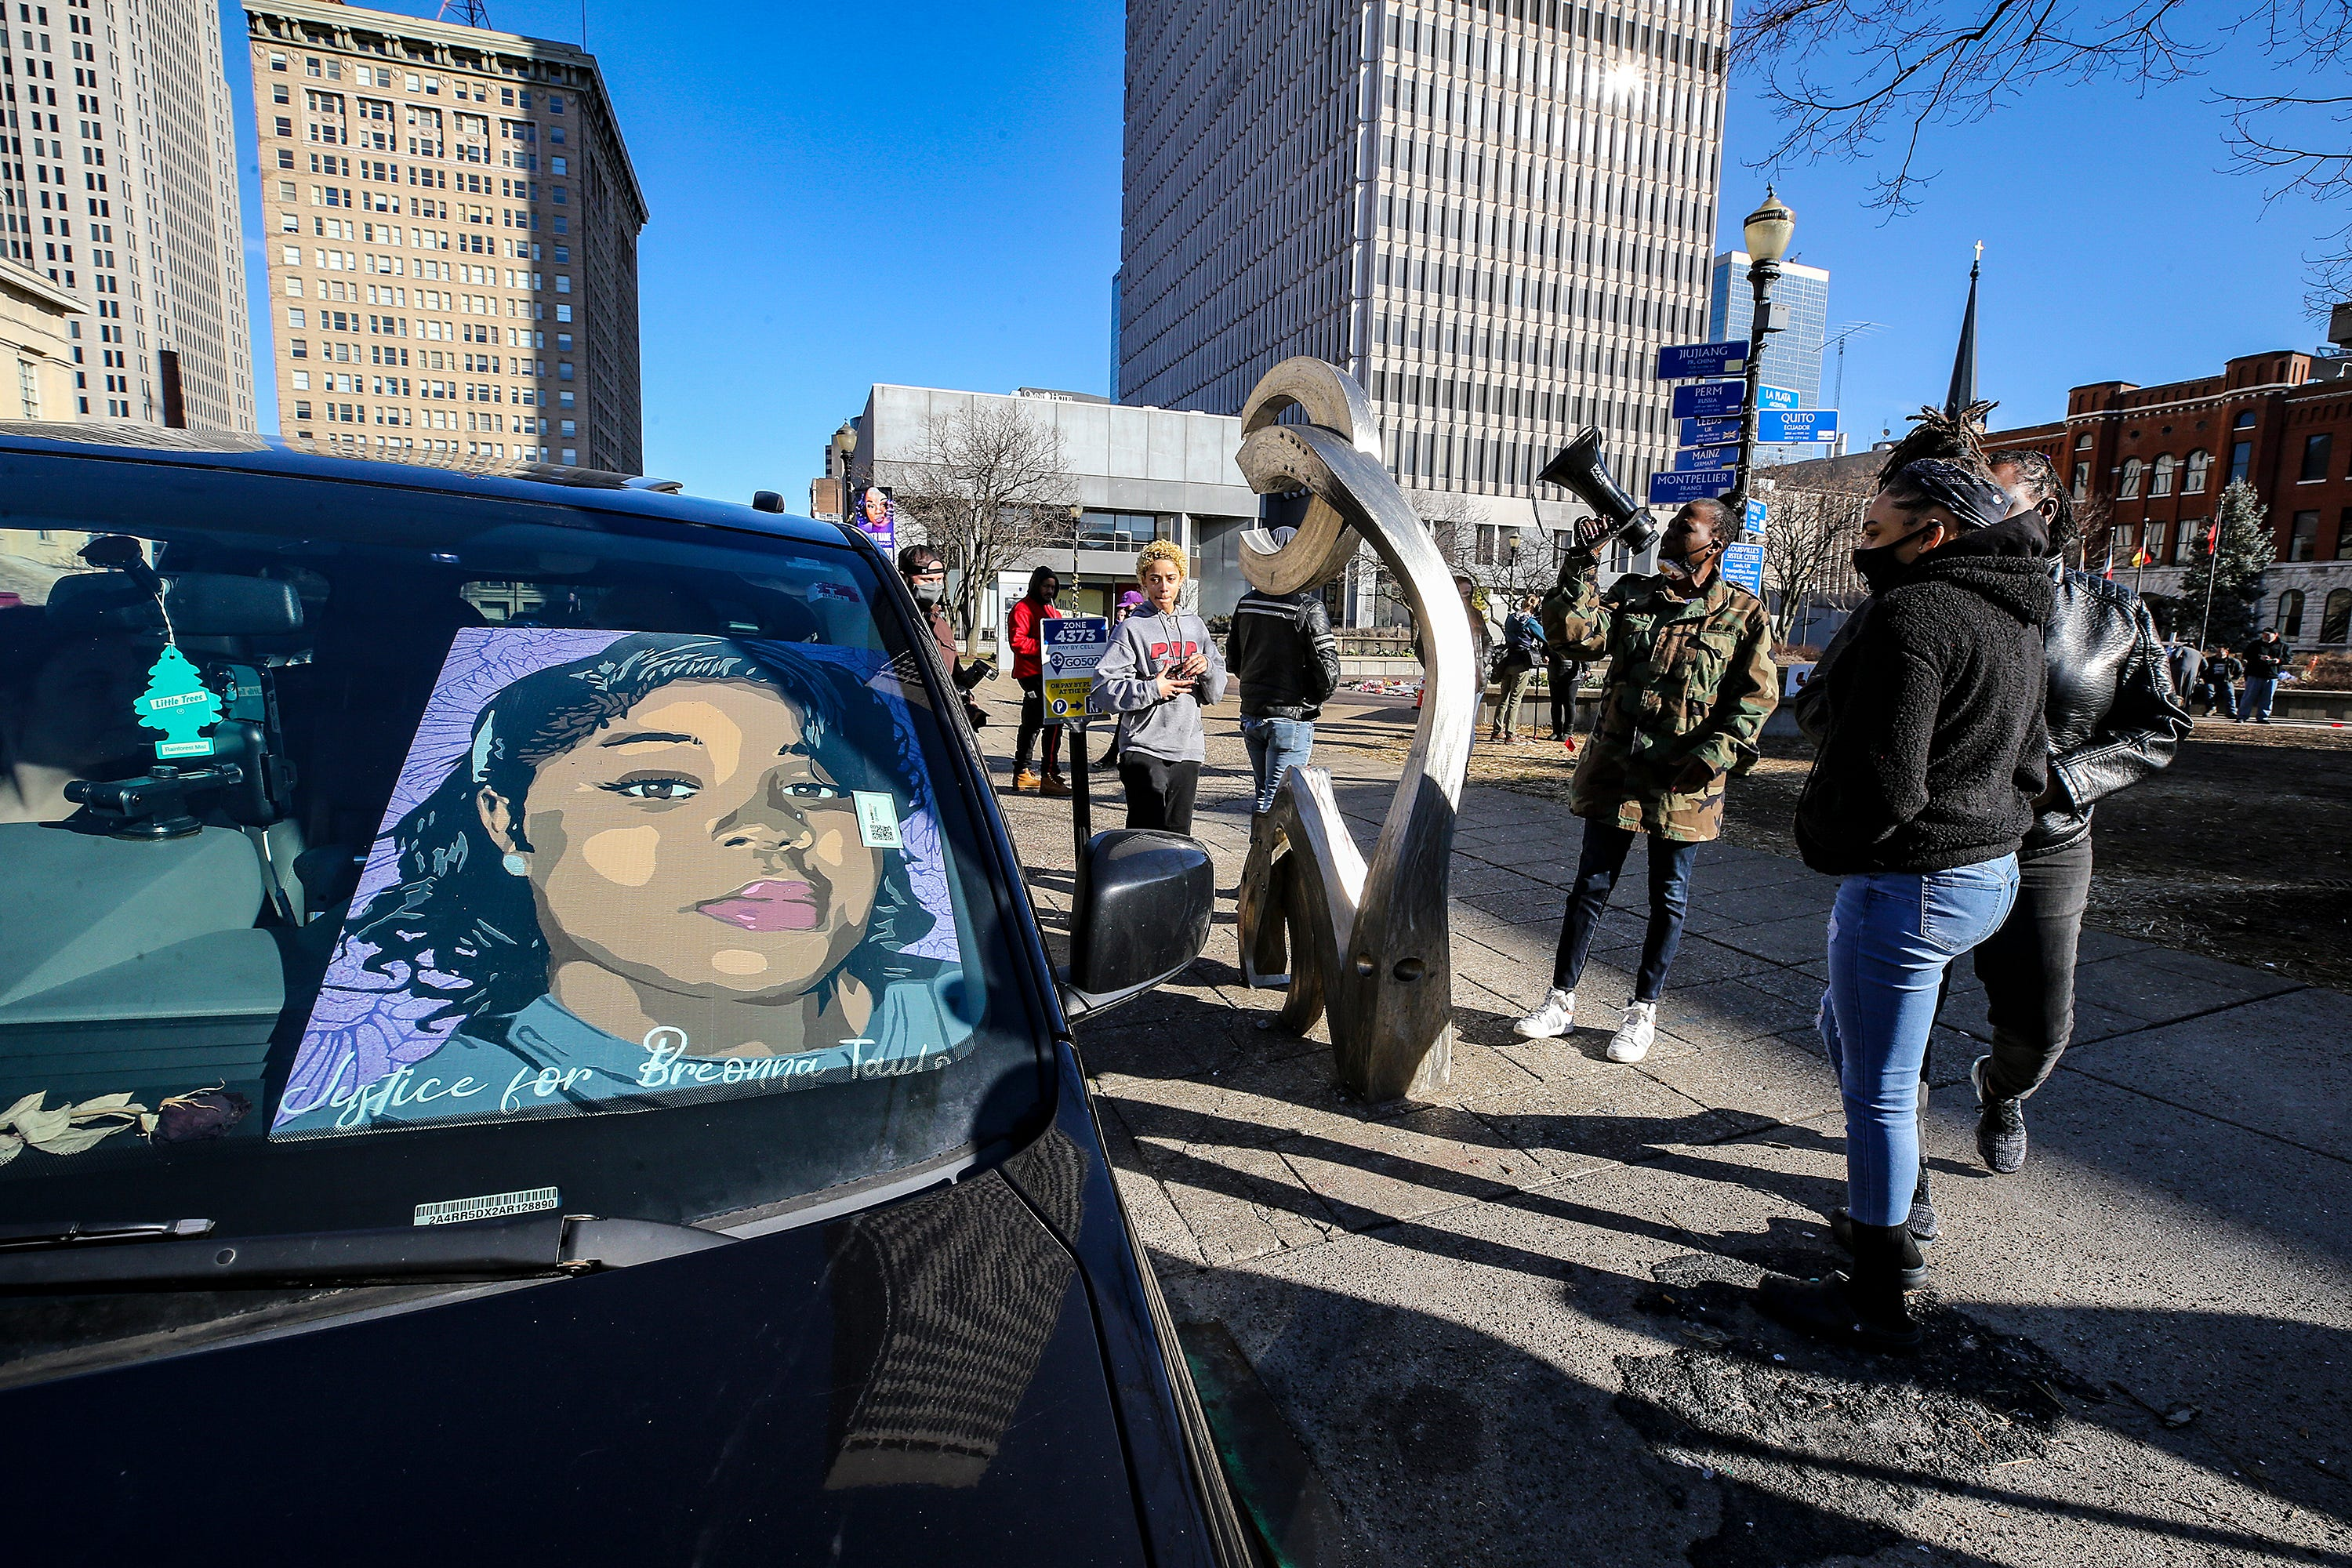 Cars gather at Jefferson Street to caravan to Frankfort for Breonna Taylor on Tuesday, March 2, 2021